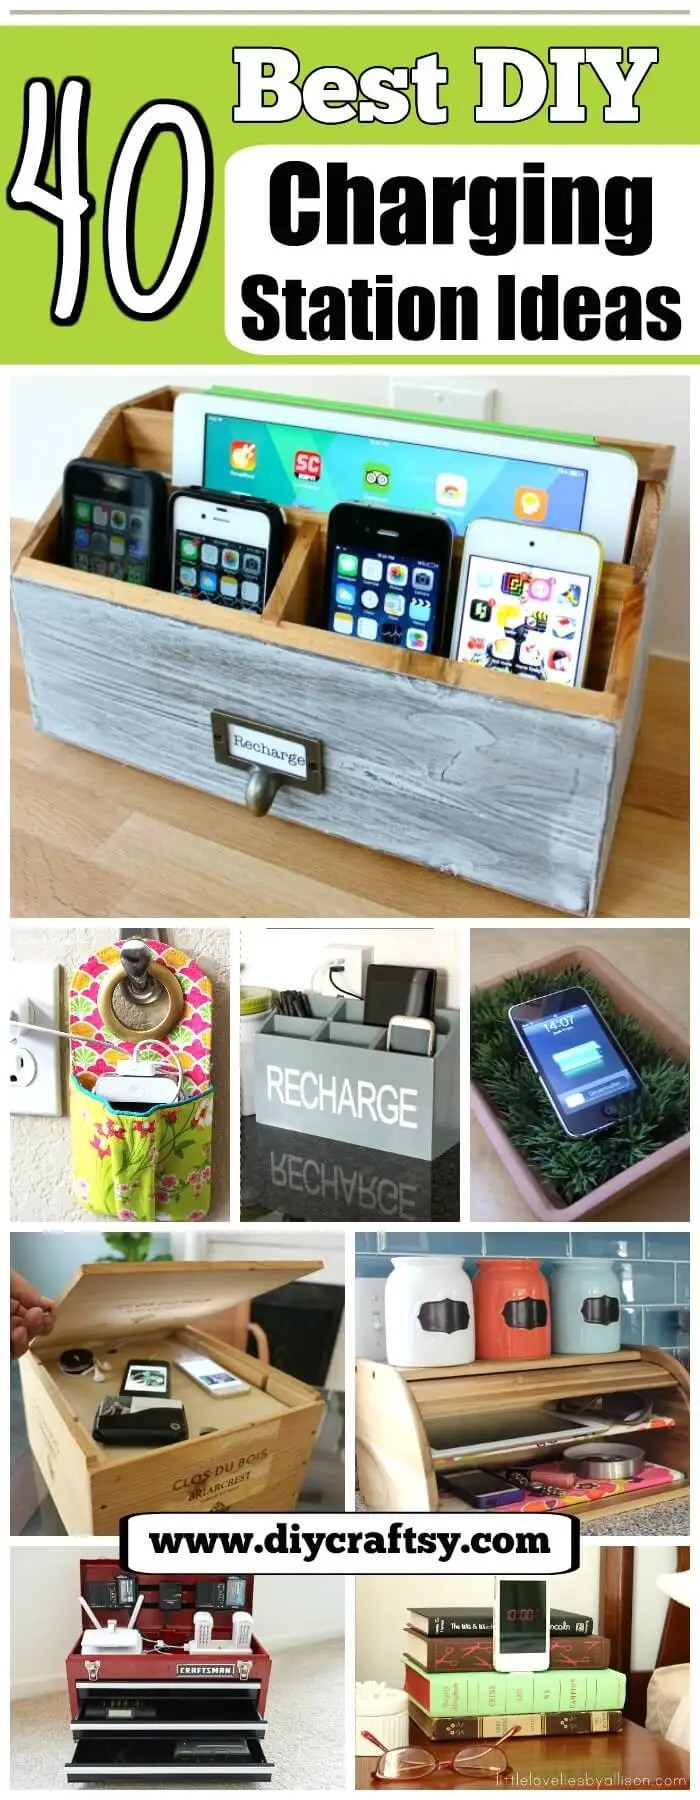 Stylish Charging Station 40 Best Diy Charging Station Ideas Easy Simple Unique Diy